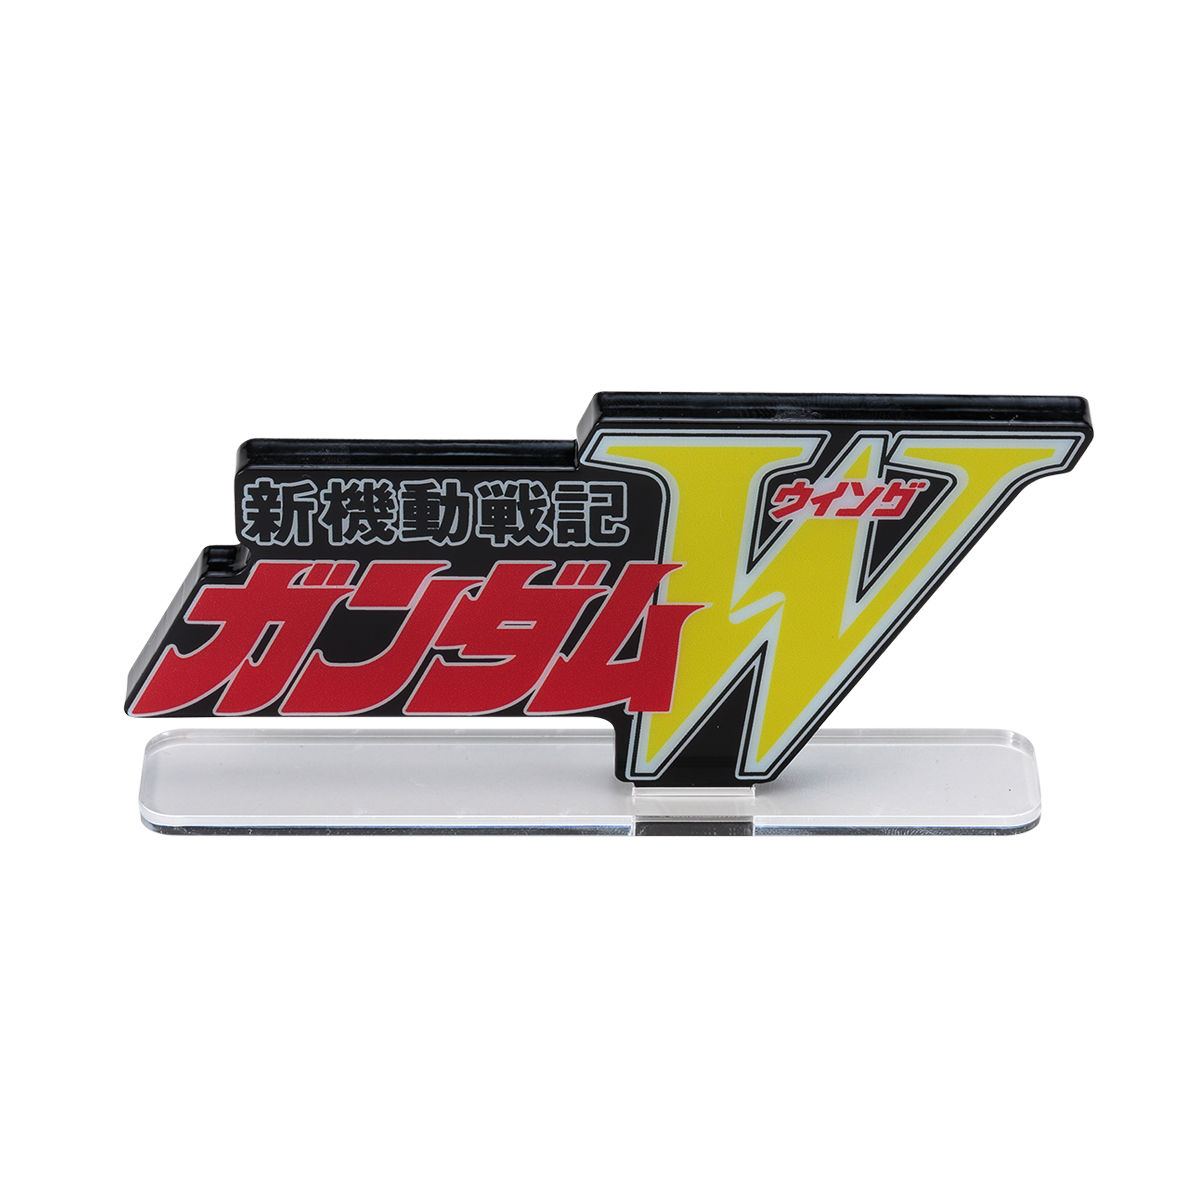 ACRYLIC LOGO DISPLAY EX 新機動戰記高達W